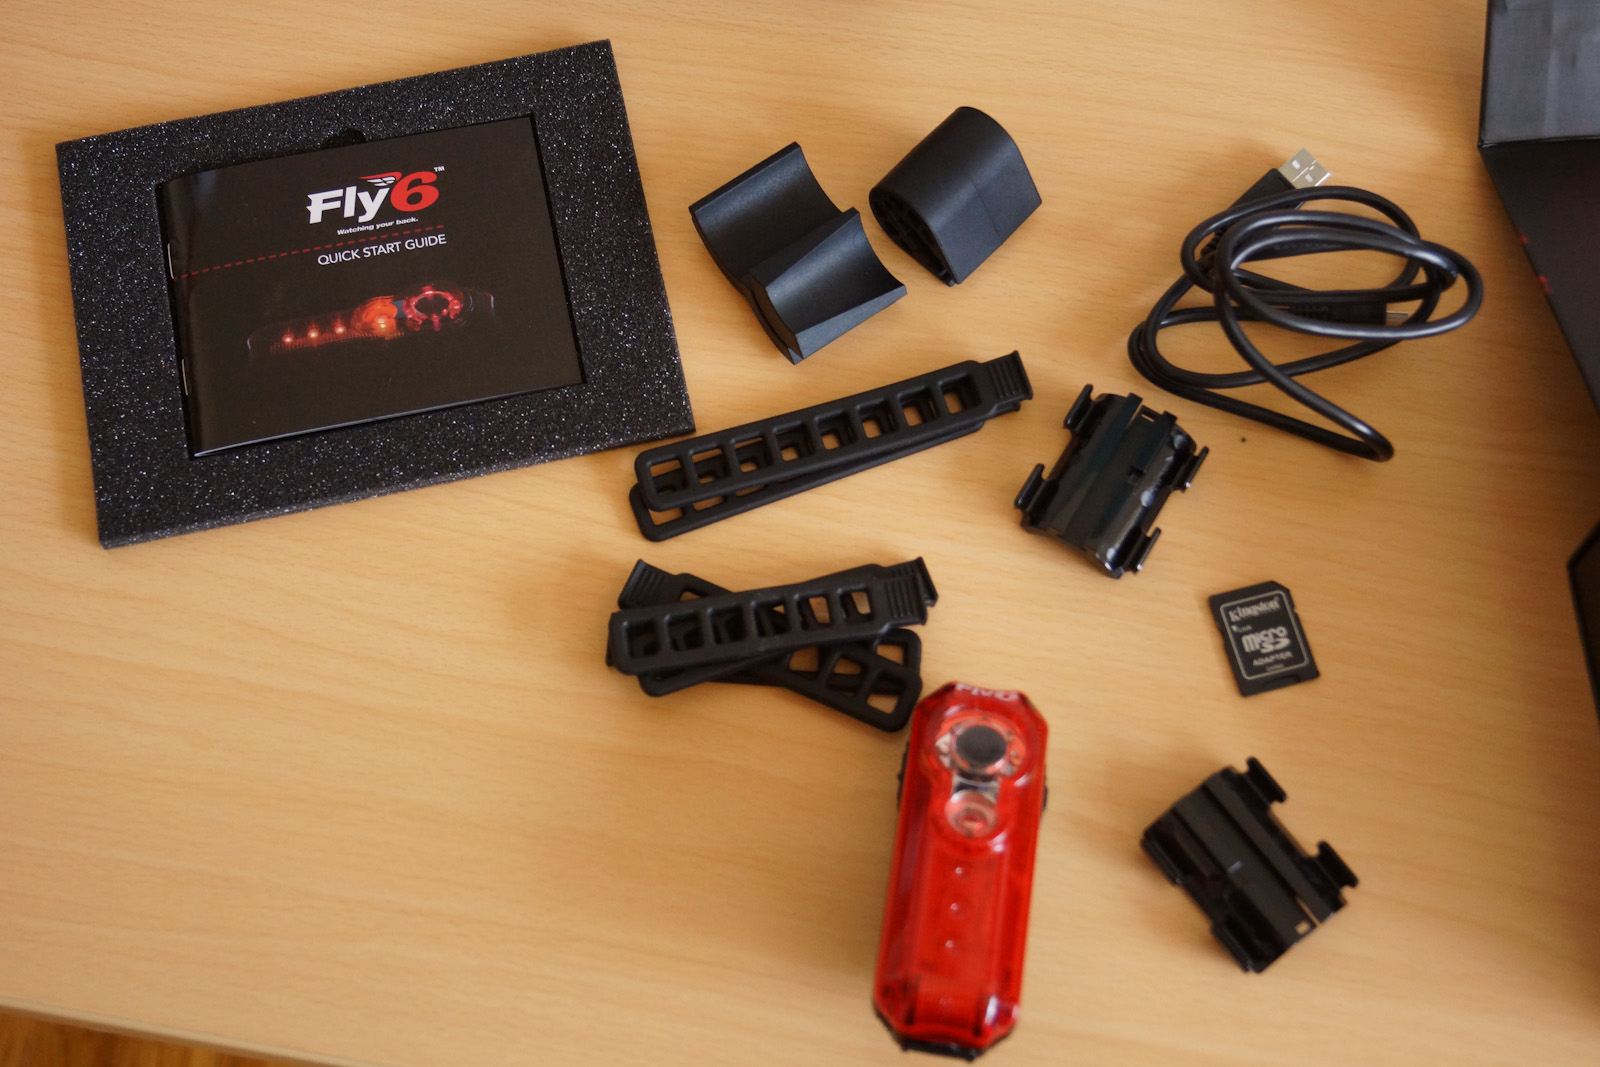 Fly6 Contents